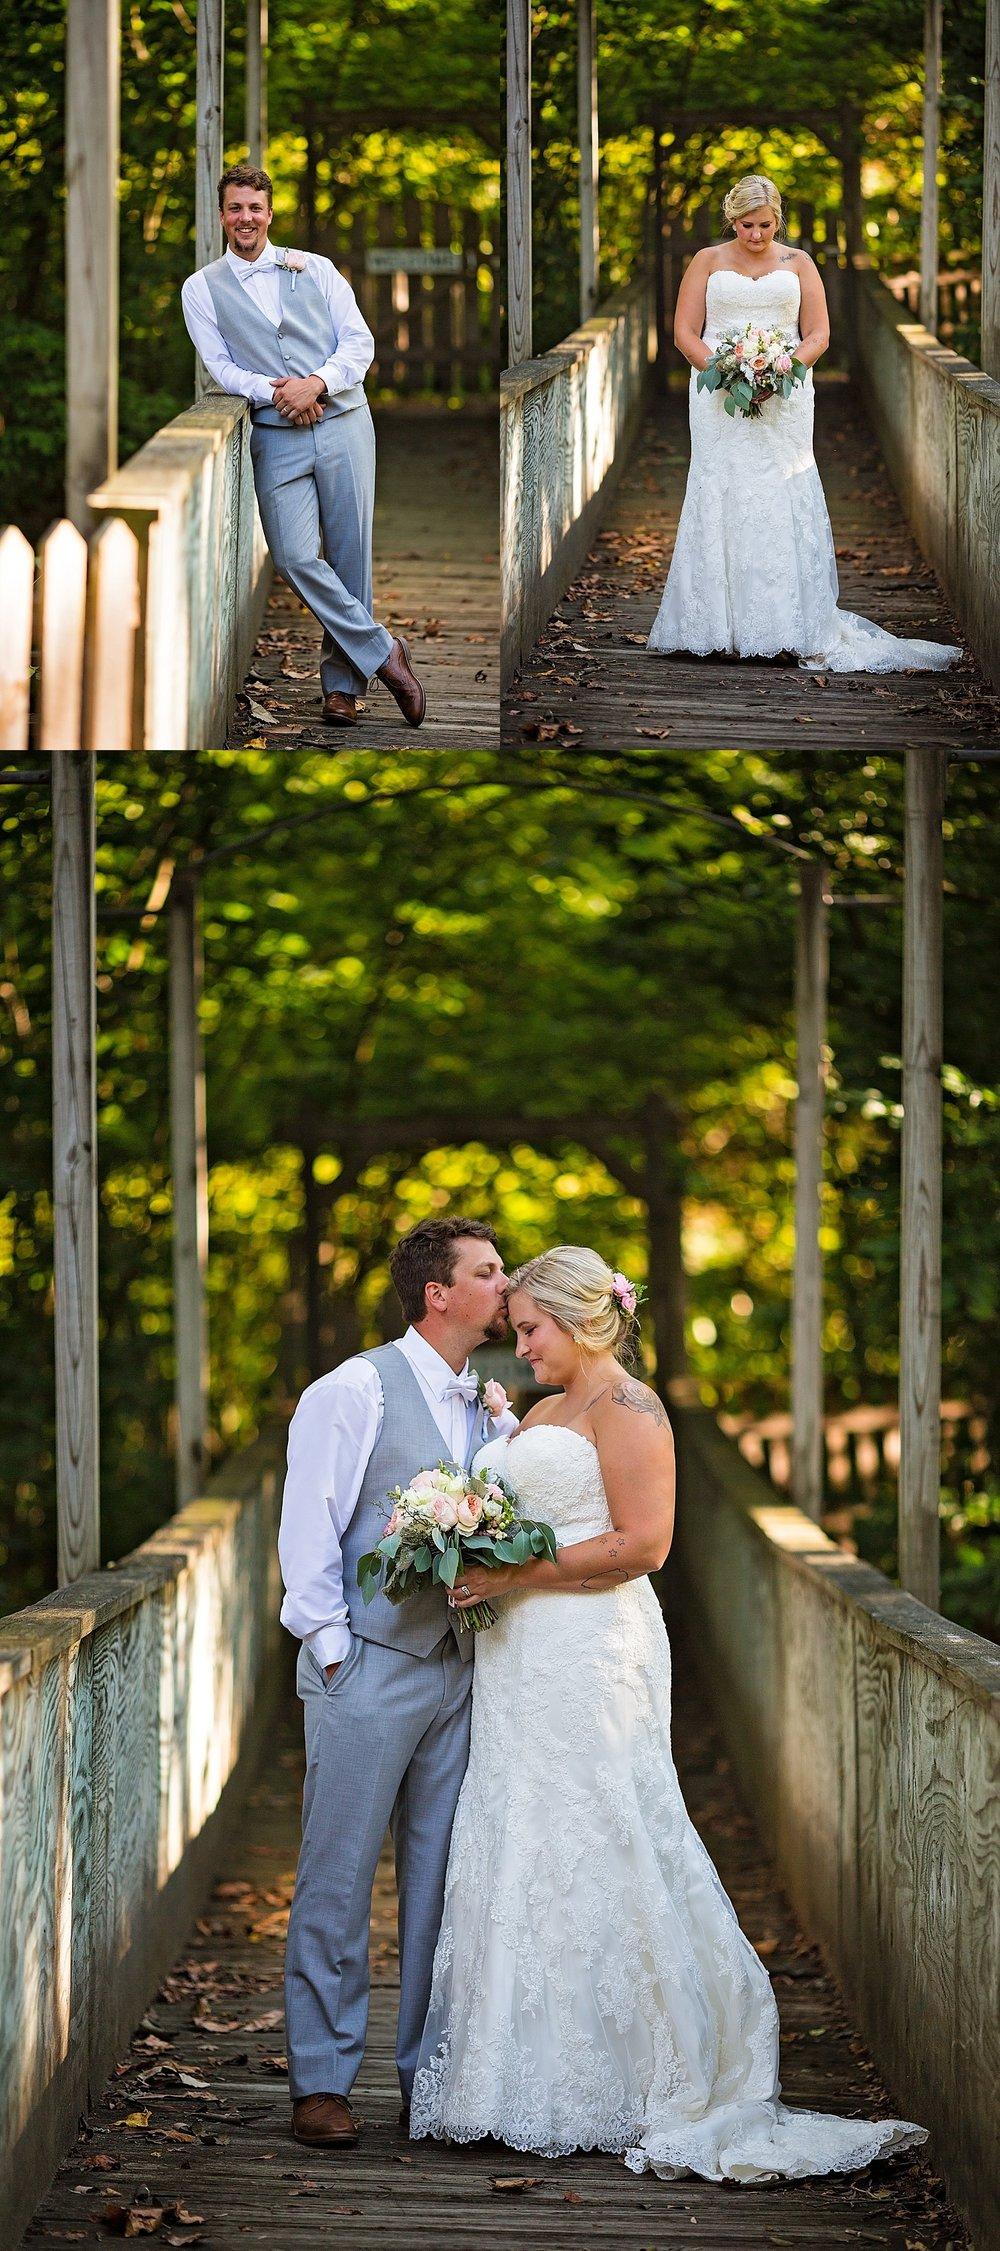 Berks Chester County Joanna Furnace Pennsylvania Wedding Photographer